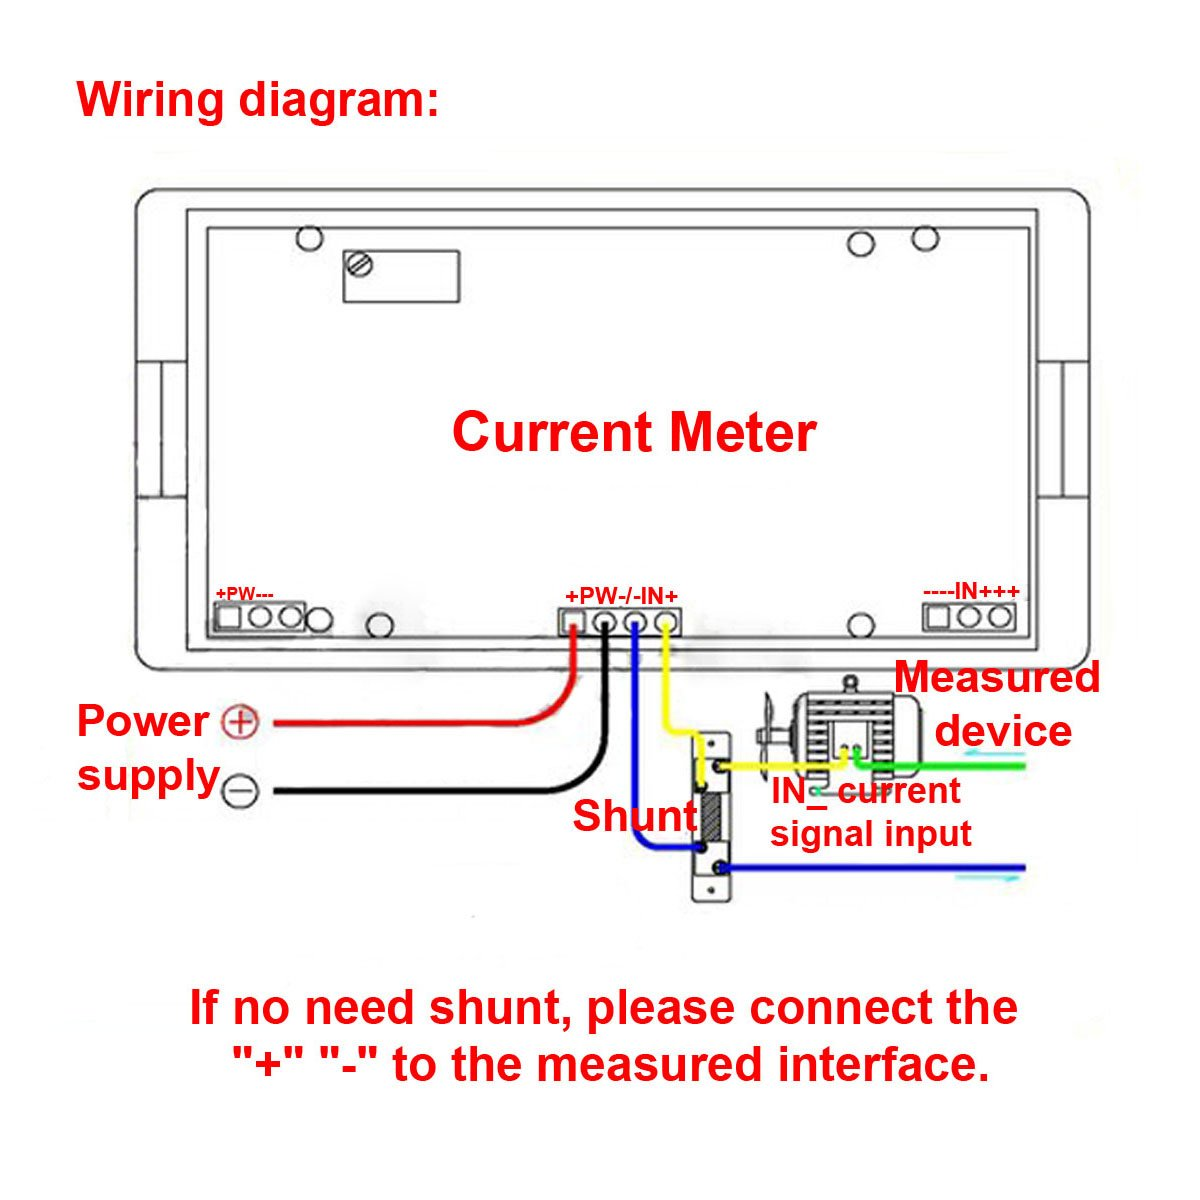 71y4ihHRXiL._SL1200_ drok wiring diagram drok power supply \u2022 wiring diagrams j squared co ac amp meter wiring diagram at bakdesigns.co